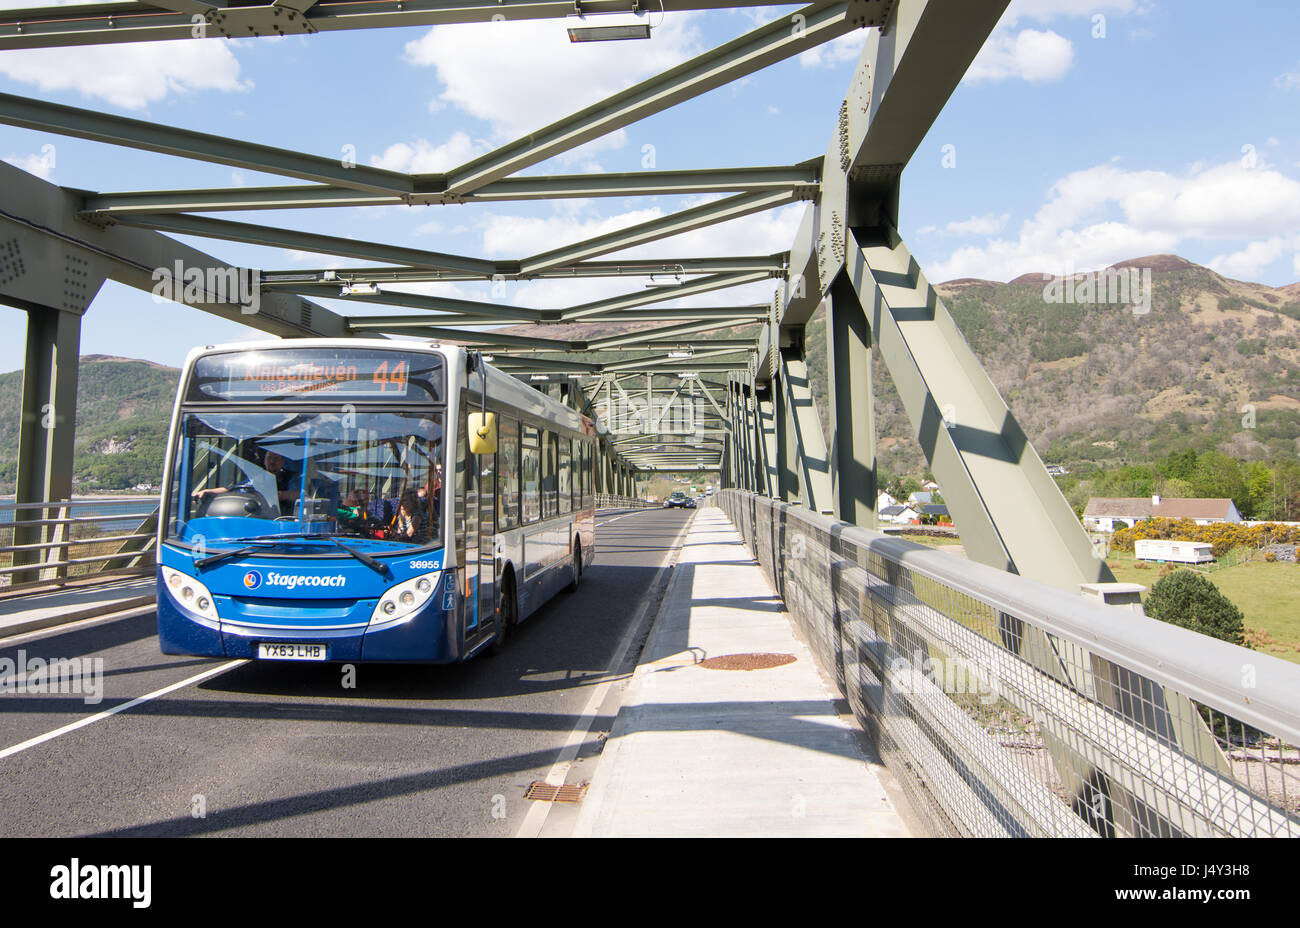 Fort William, Scotland - May 11, 2016: A Stagecoach Highland rural bus service at Ballachulish Bridge near Glen - Stock Image